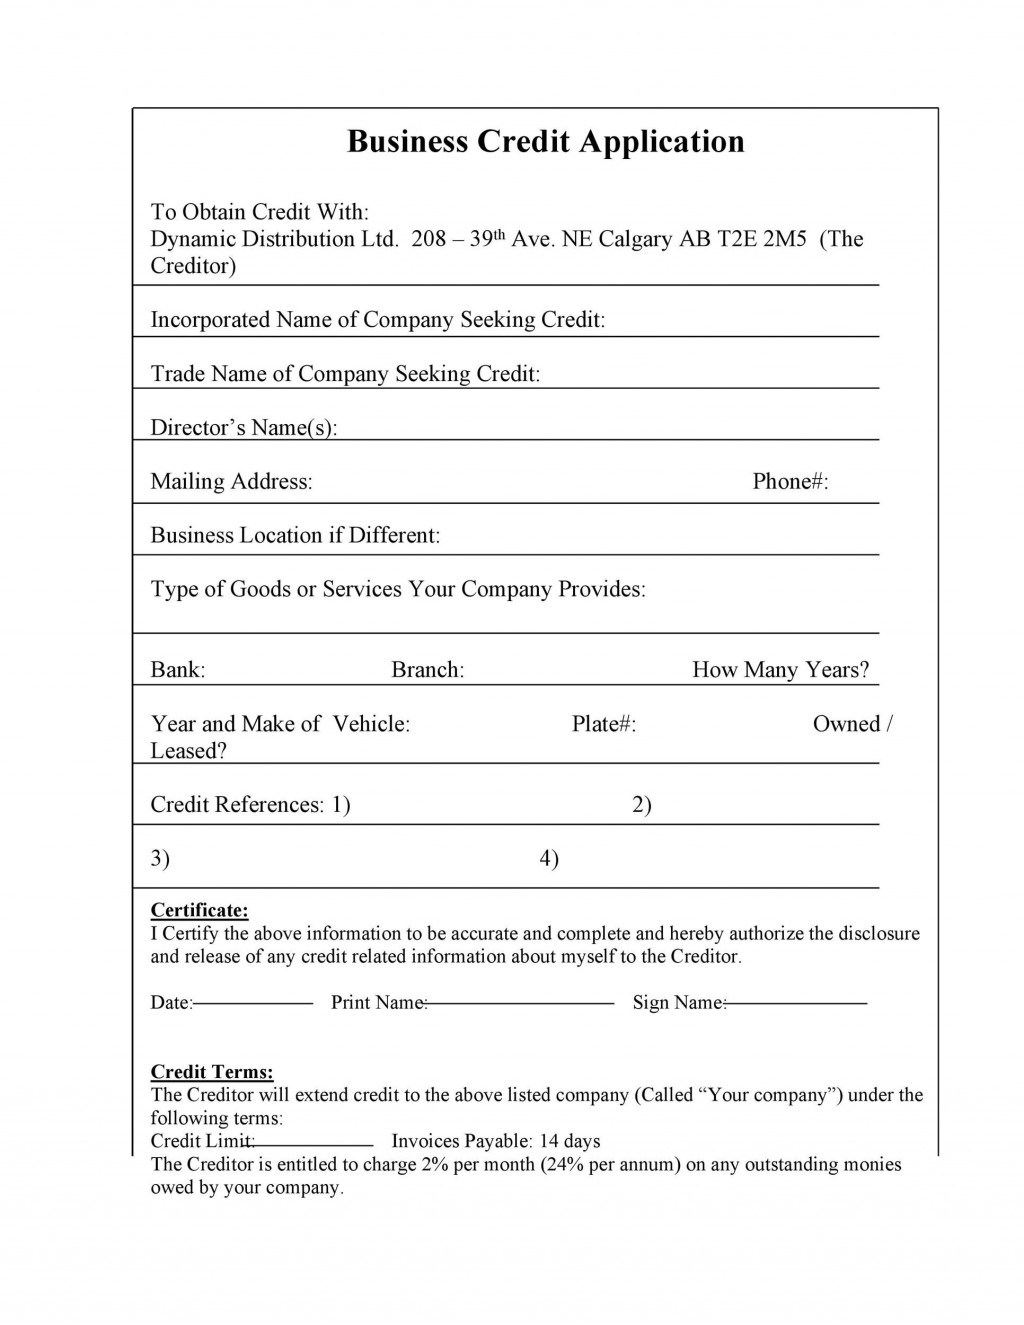 007 Archaicawful Busines Credit Application Form Free Inspiration  TemplateLarge